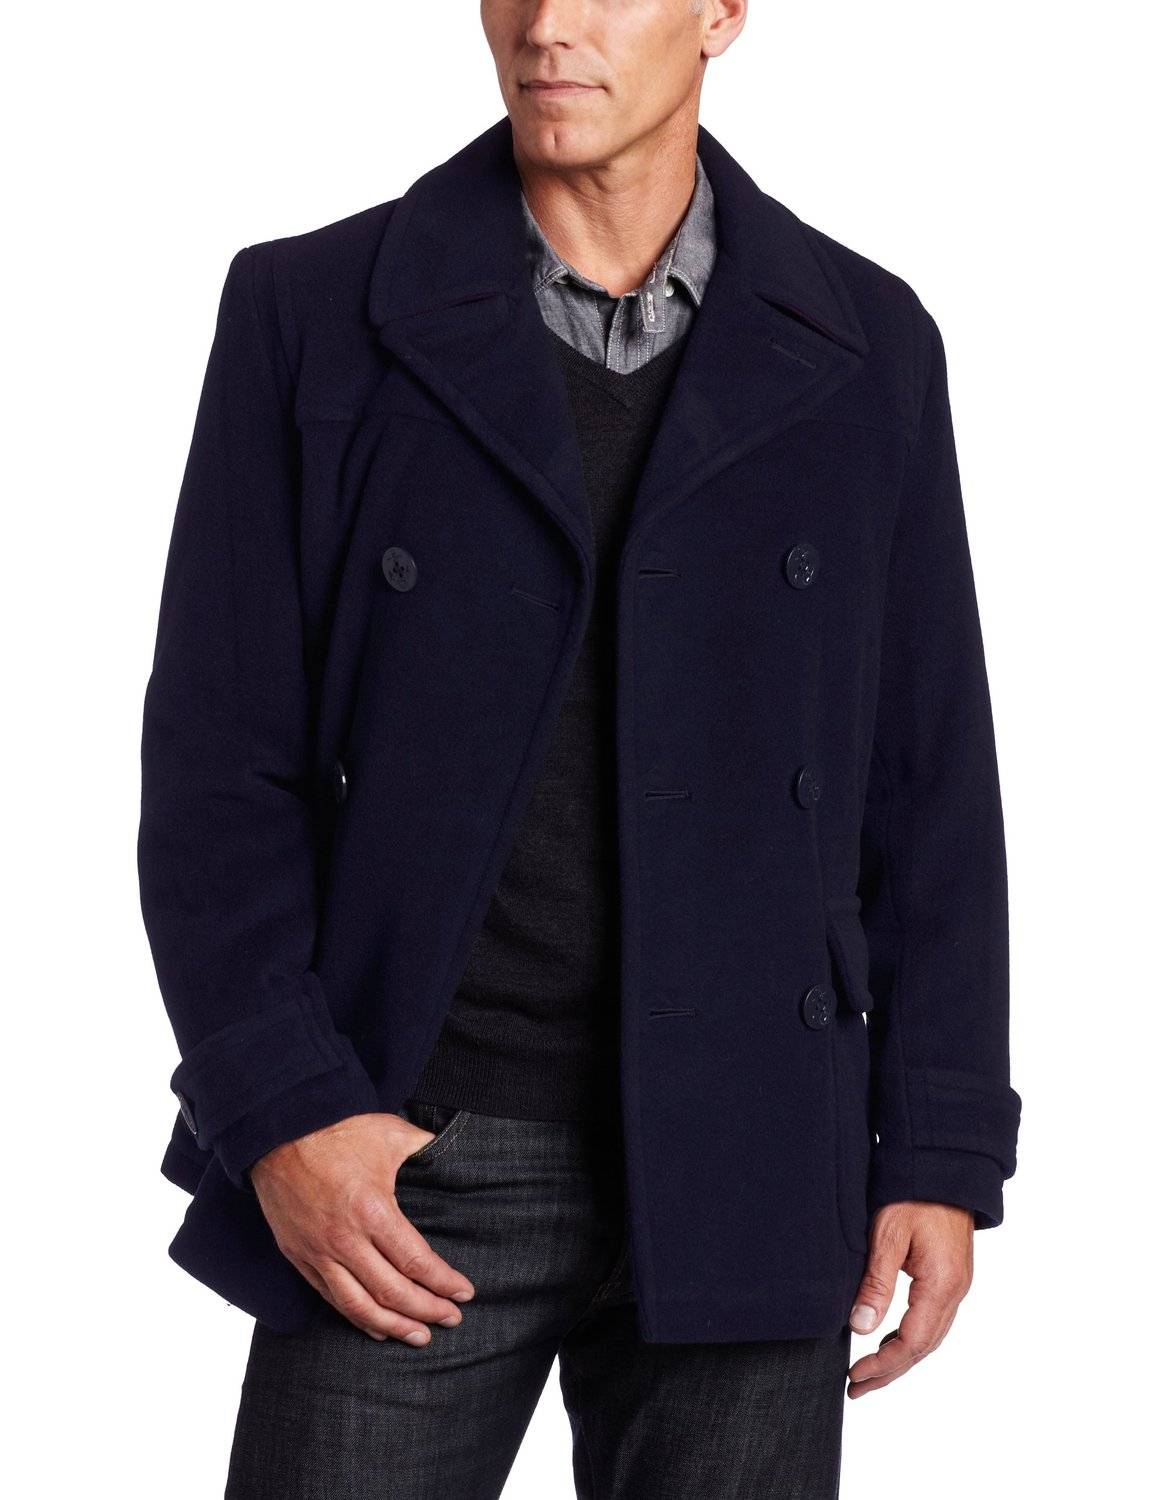 How to Wear a Pea Coat for Men - The Trend Spotter 44